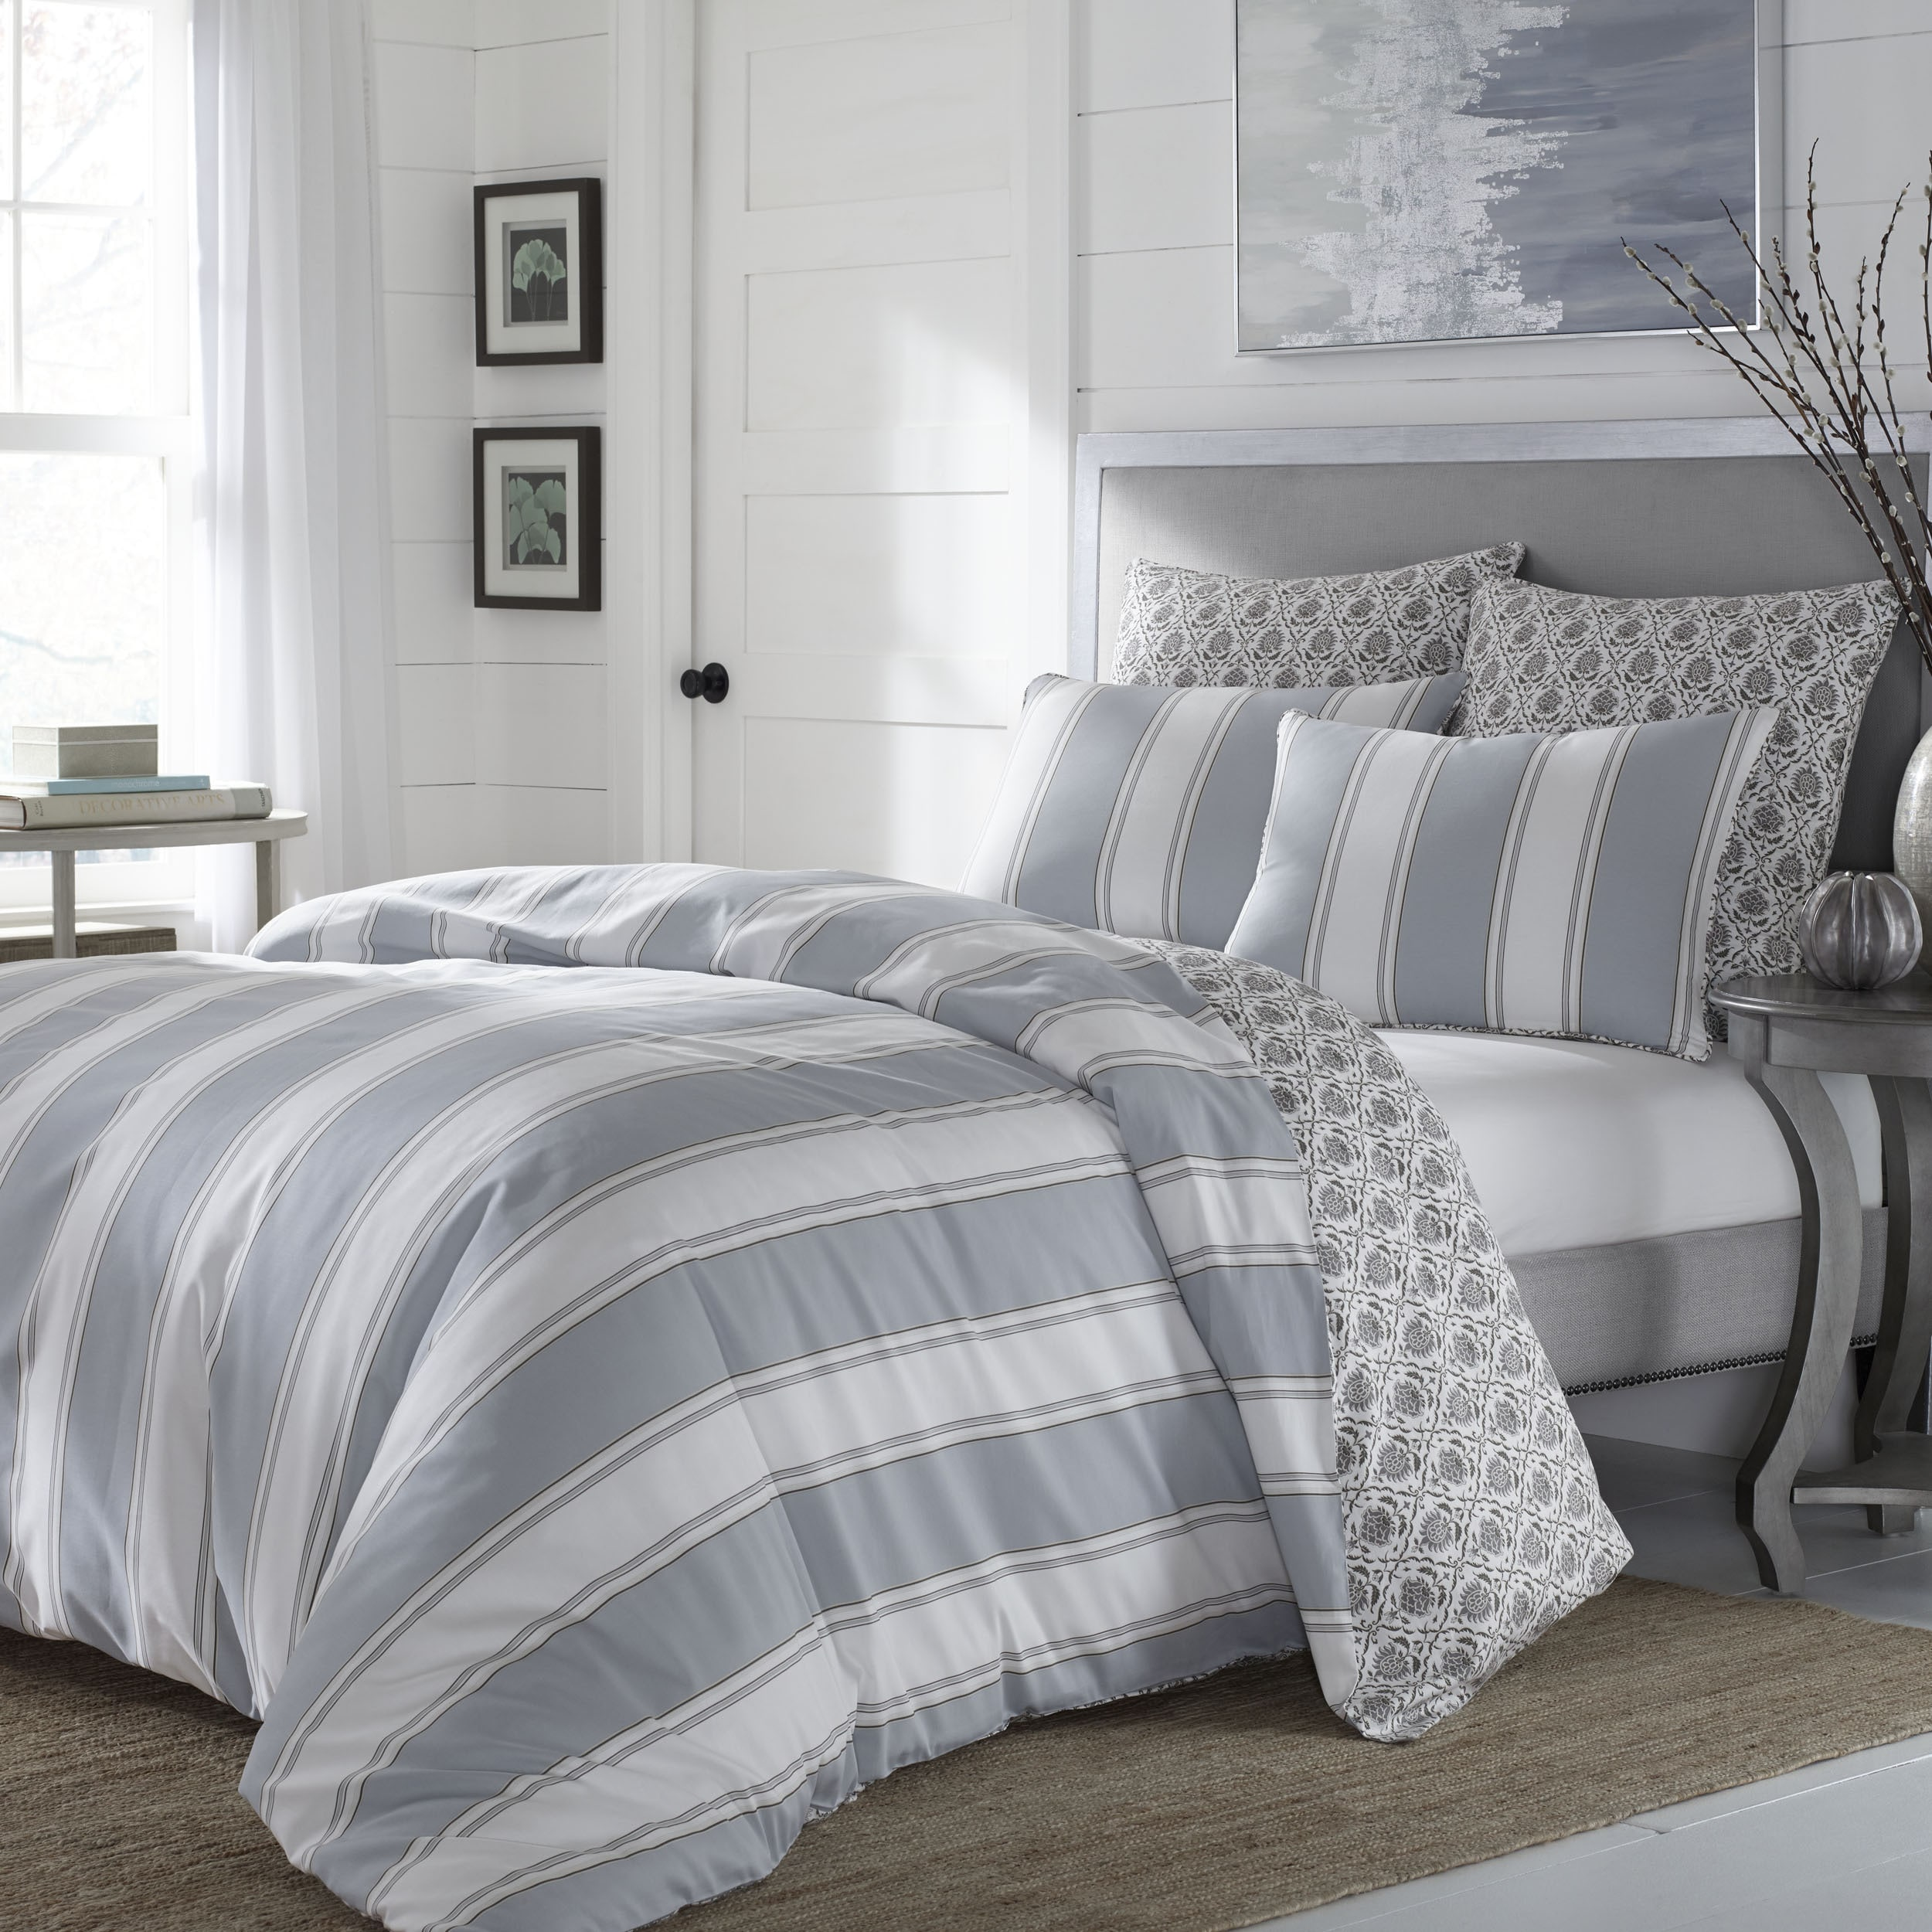 of stone a from soothing and blue duvet in comforter to home breakfast collection pin ambiance palette cottage the your bed brings set styled lancaster bedding